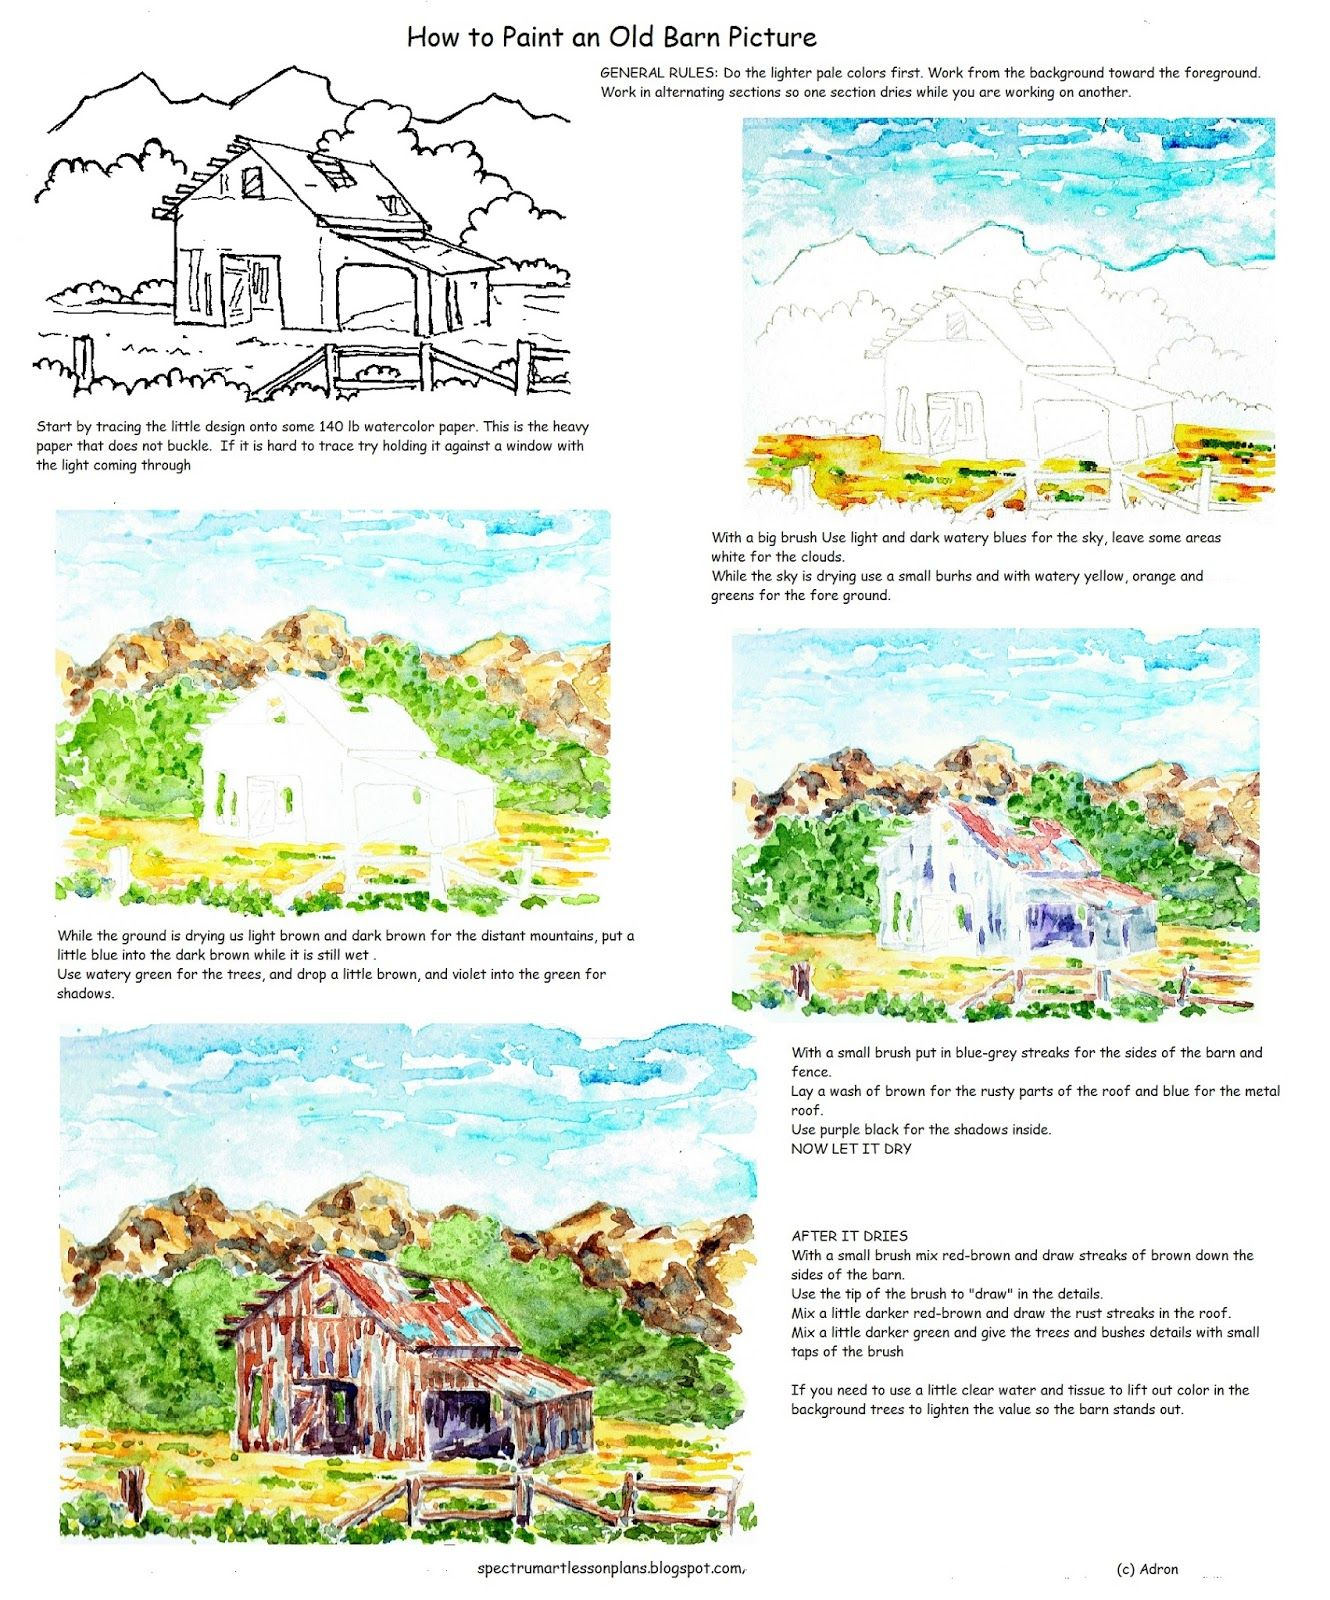 How To Paint An Old Rustic Barn In Watercolor Worksheet